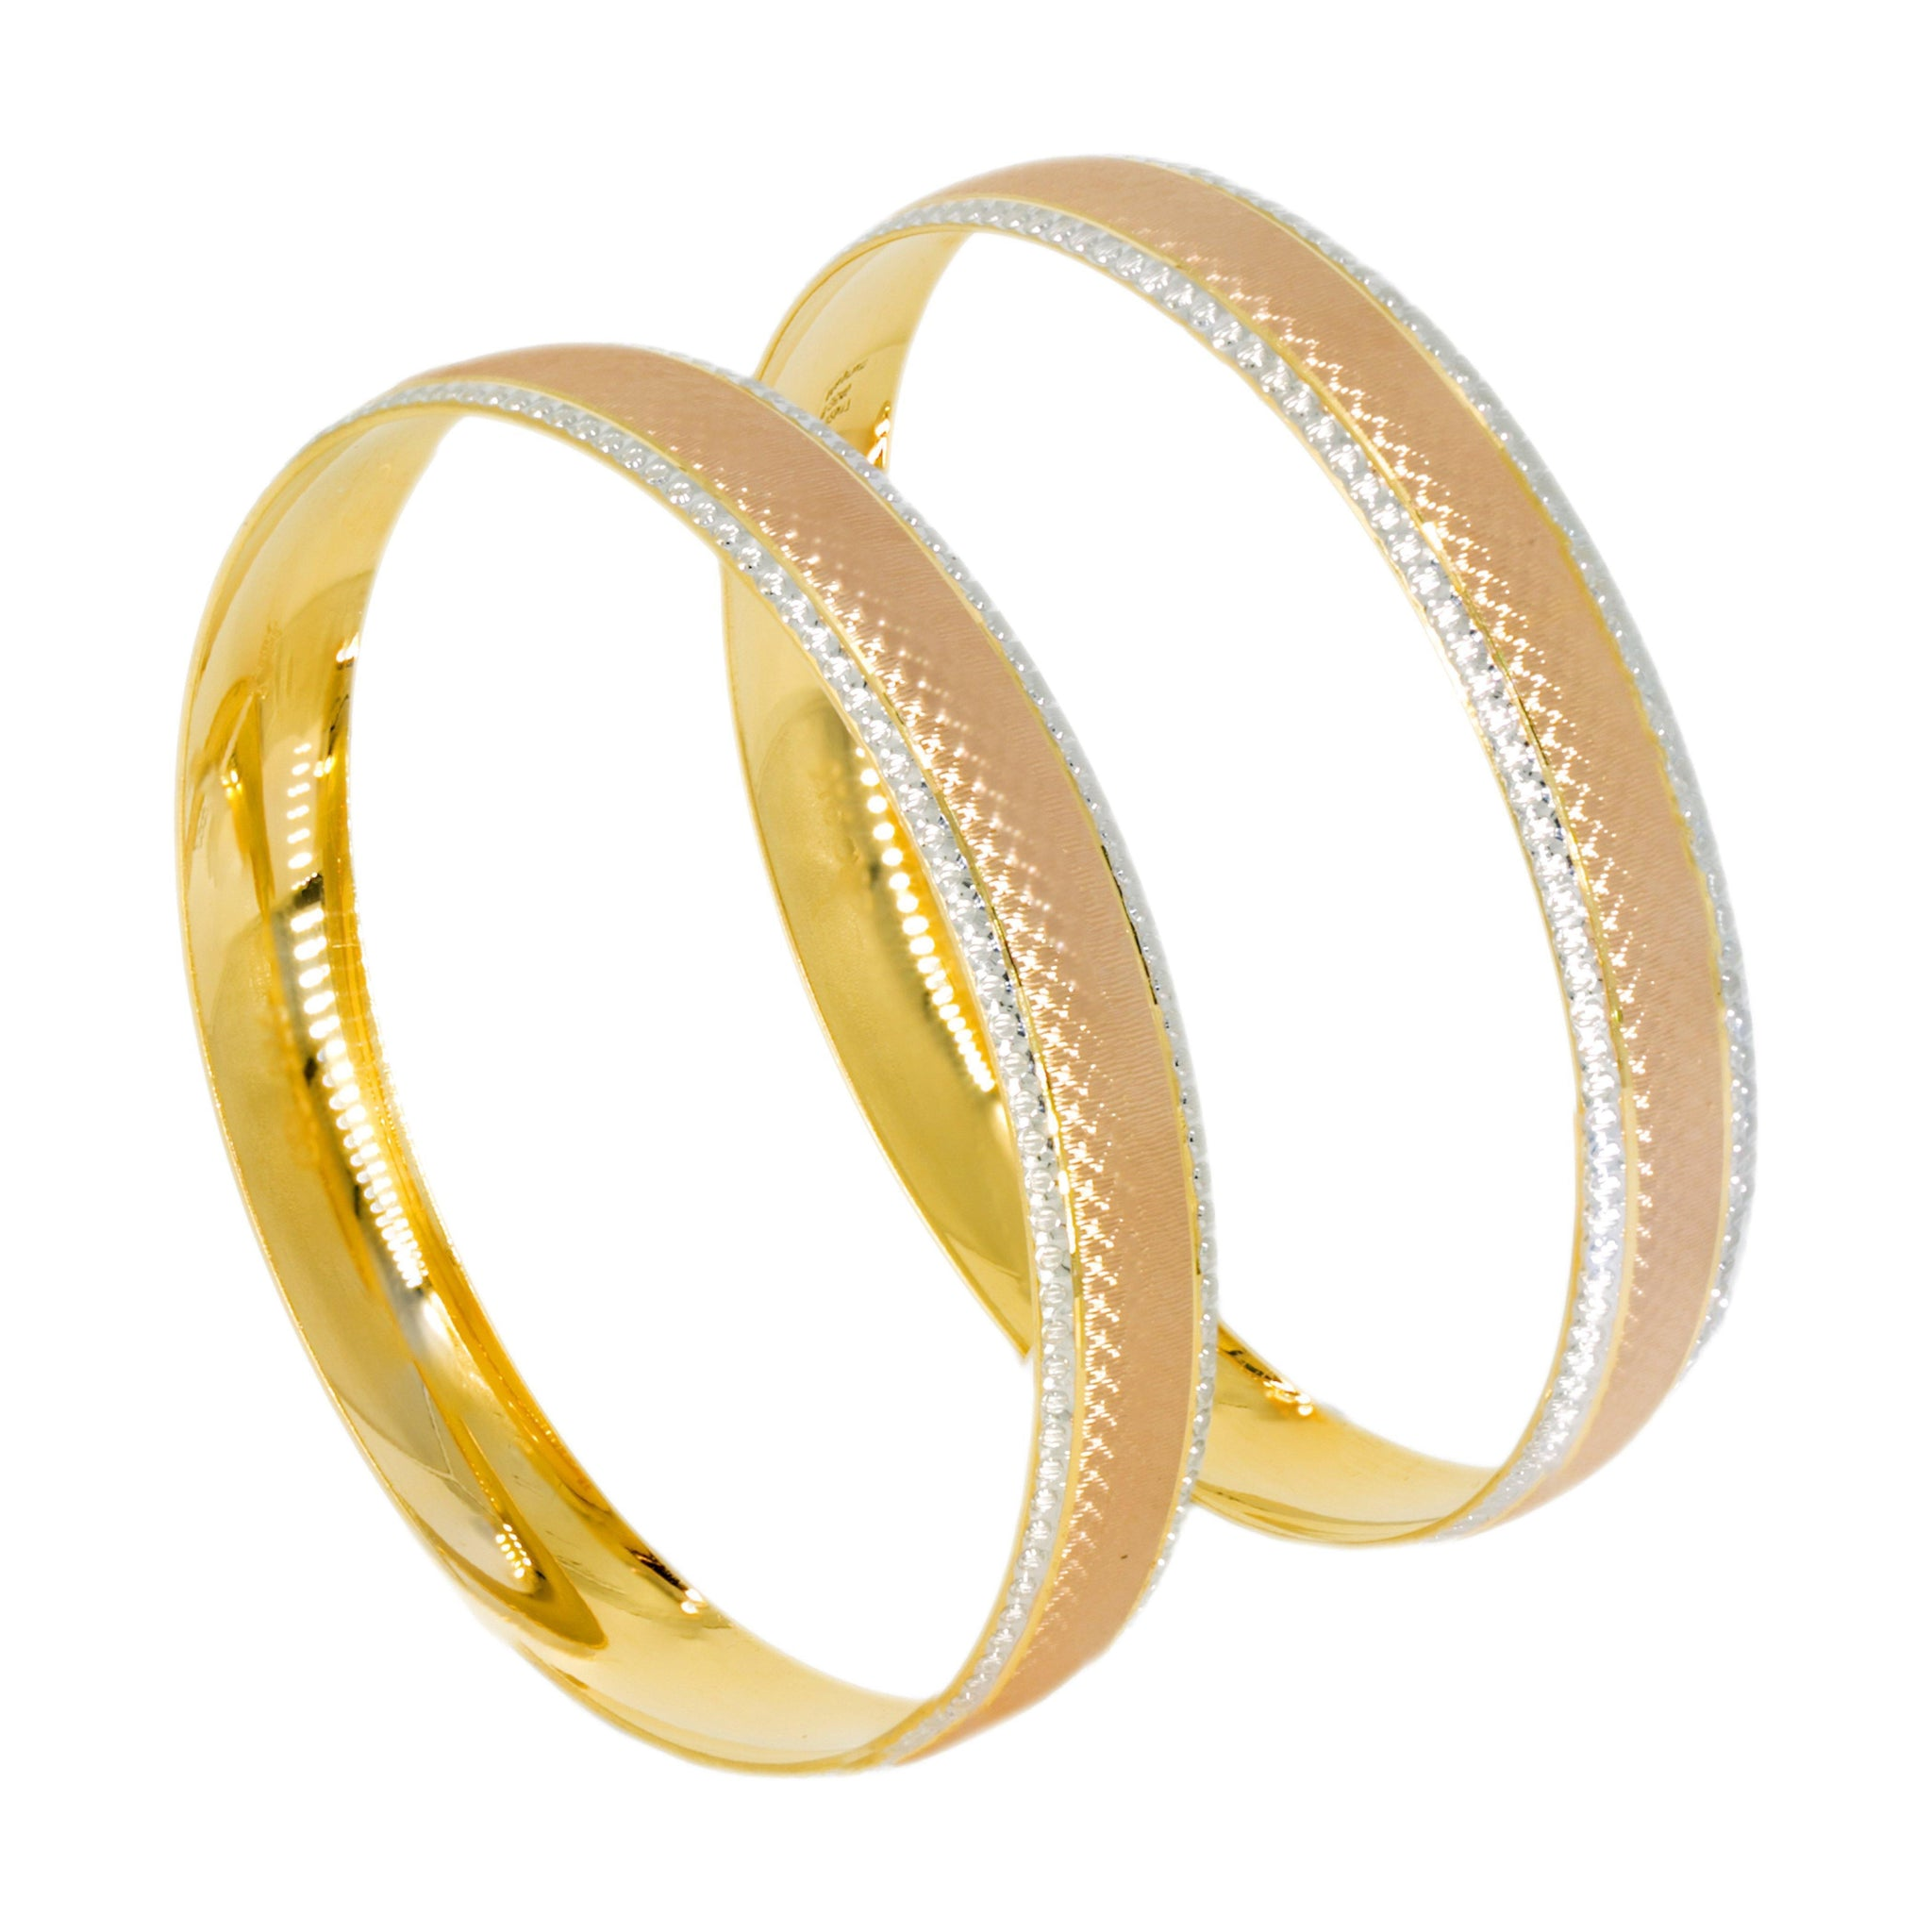 bangles gold jewellery nadia younis precious product img